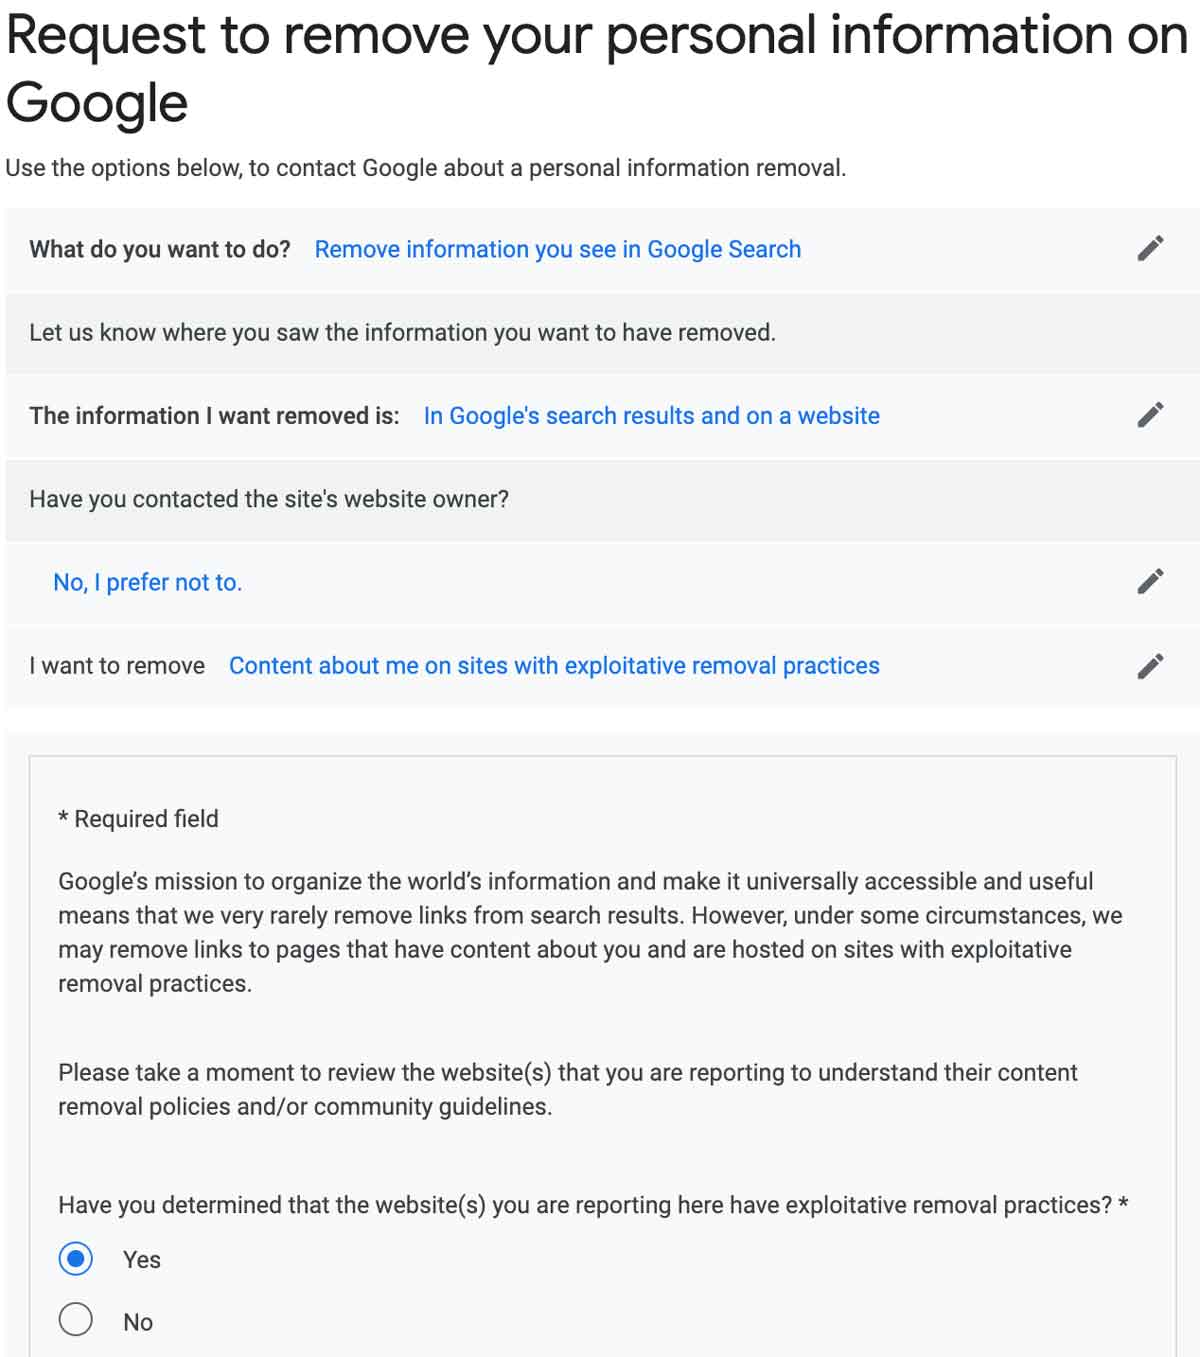 remove google results for exploitive practices form